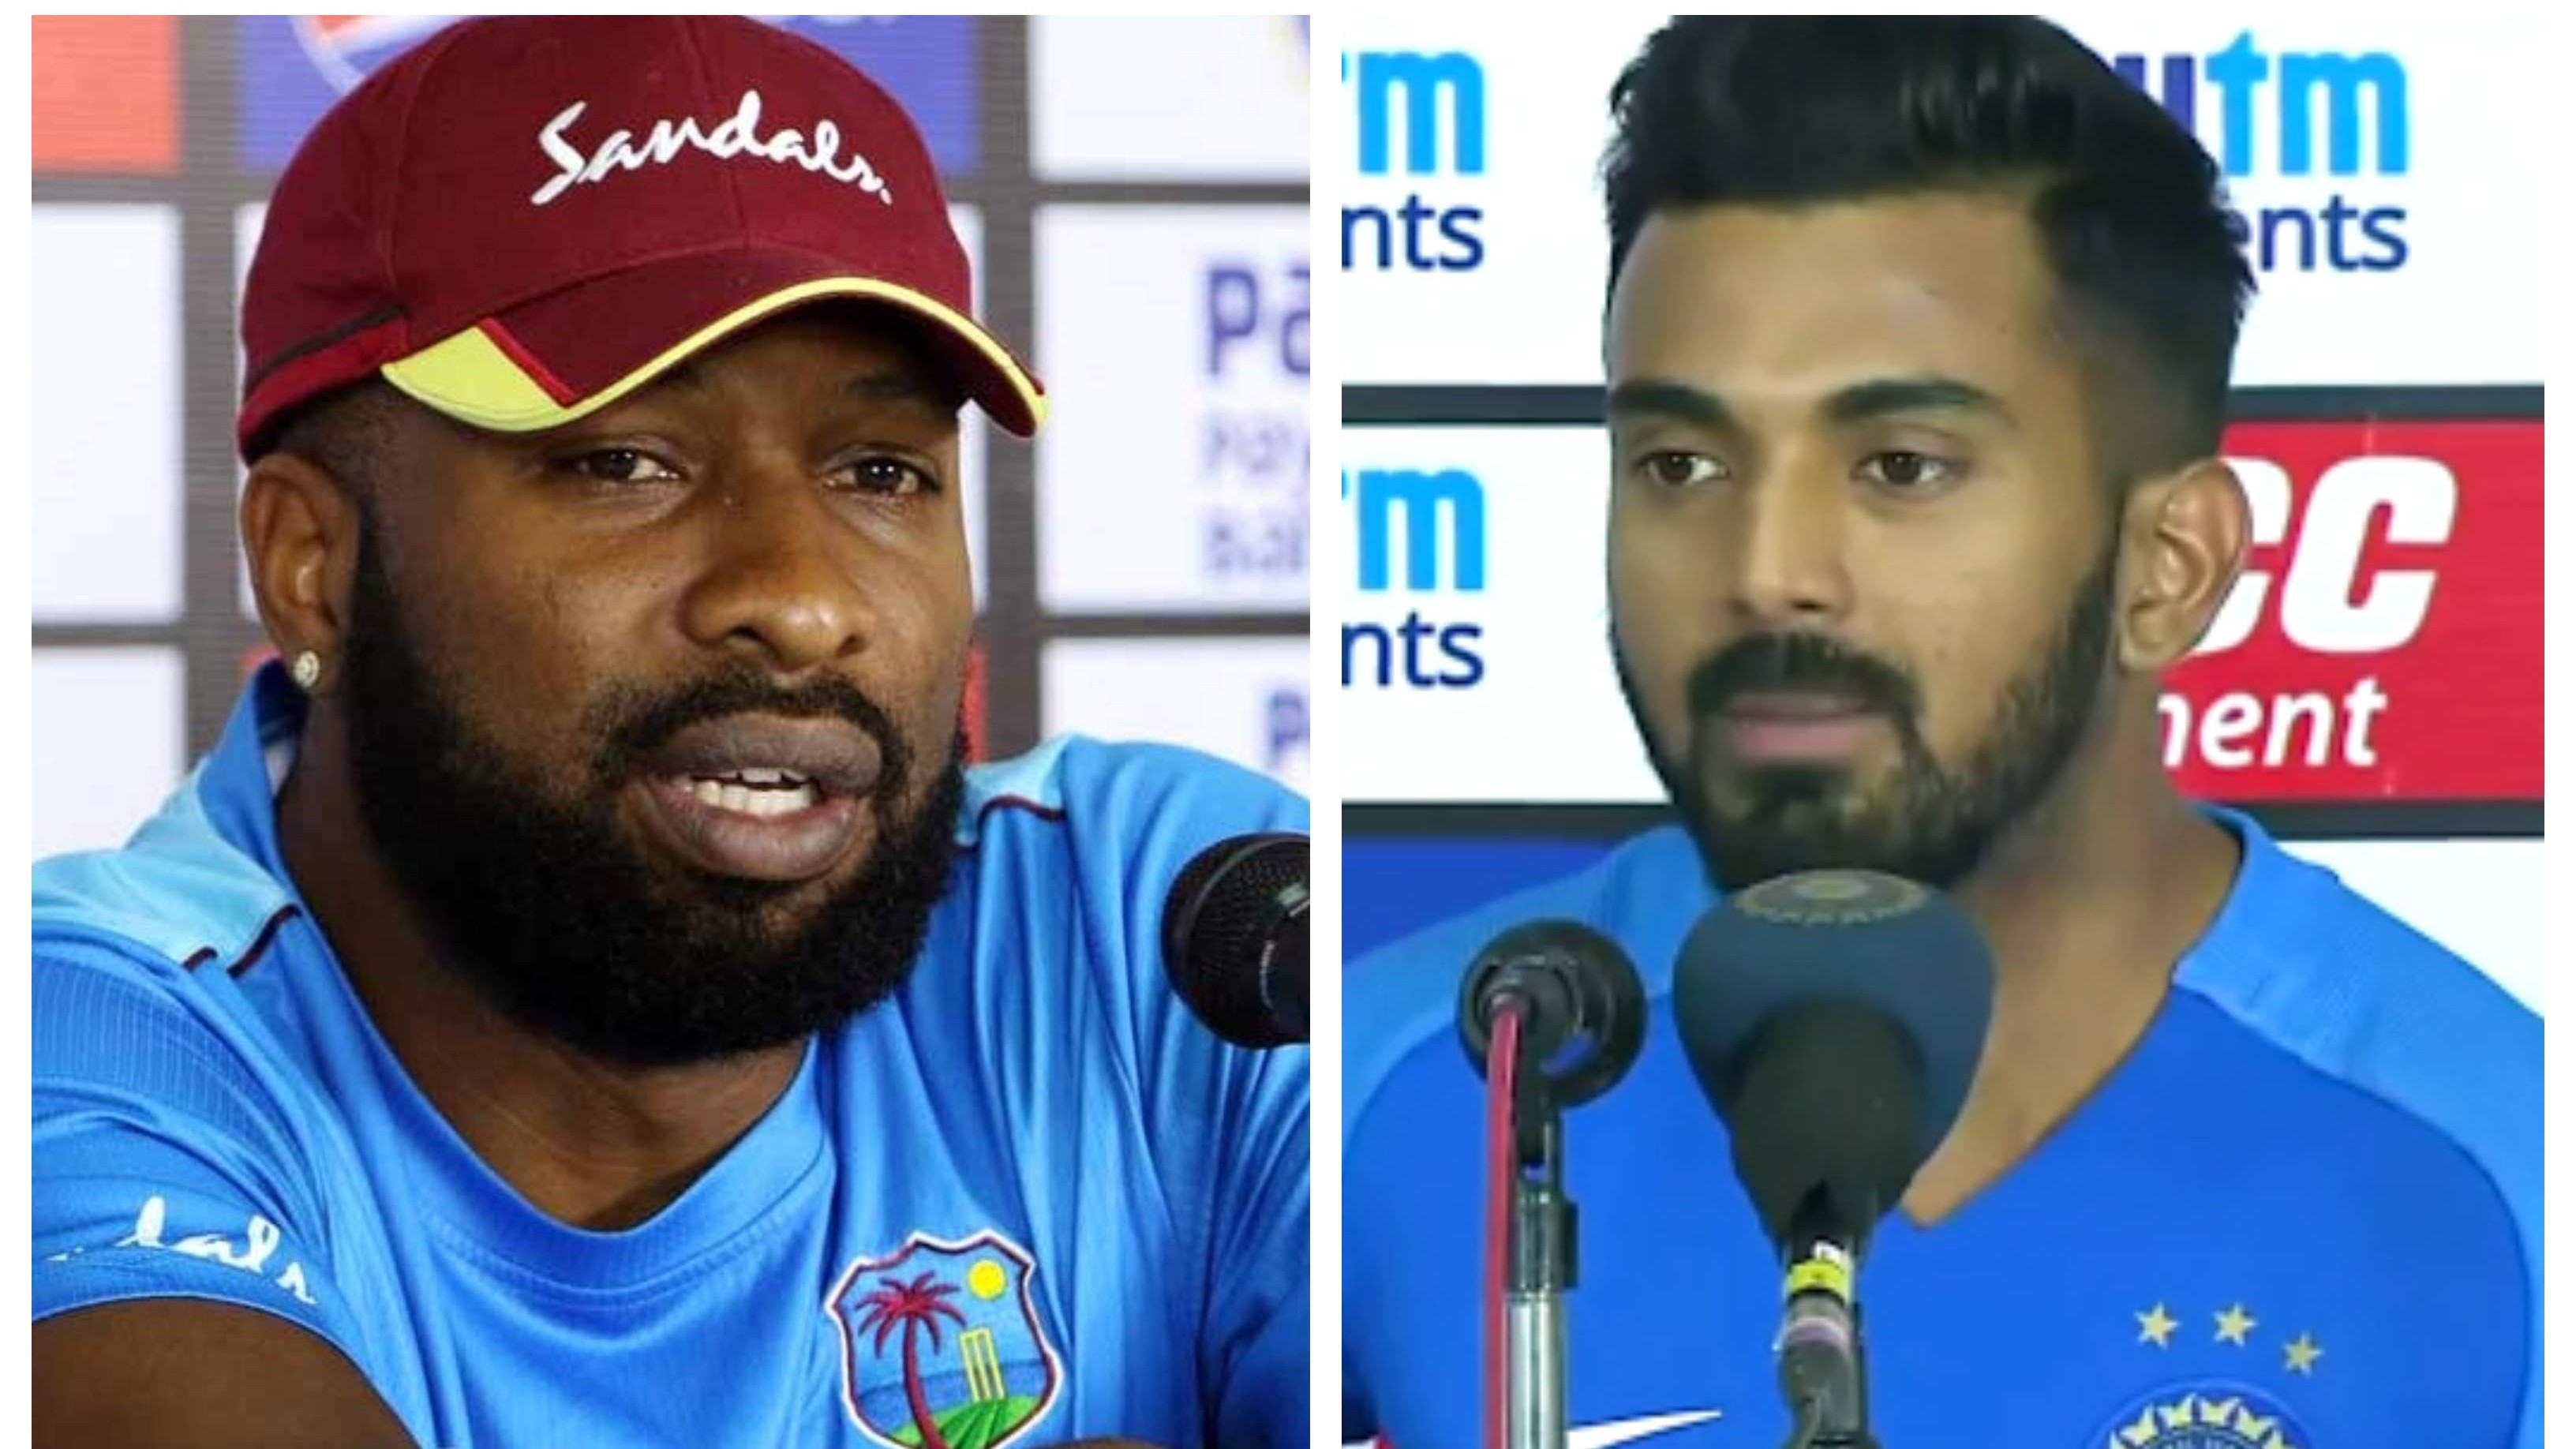 IND v WI 2019: KL Rahul, Kieron Pollard share their thoughts on TV umpires calling no-balls